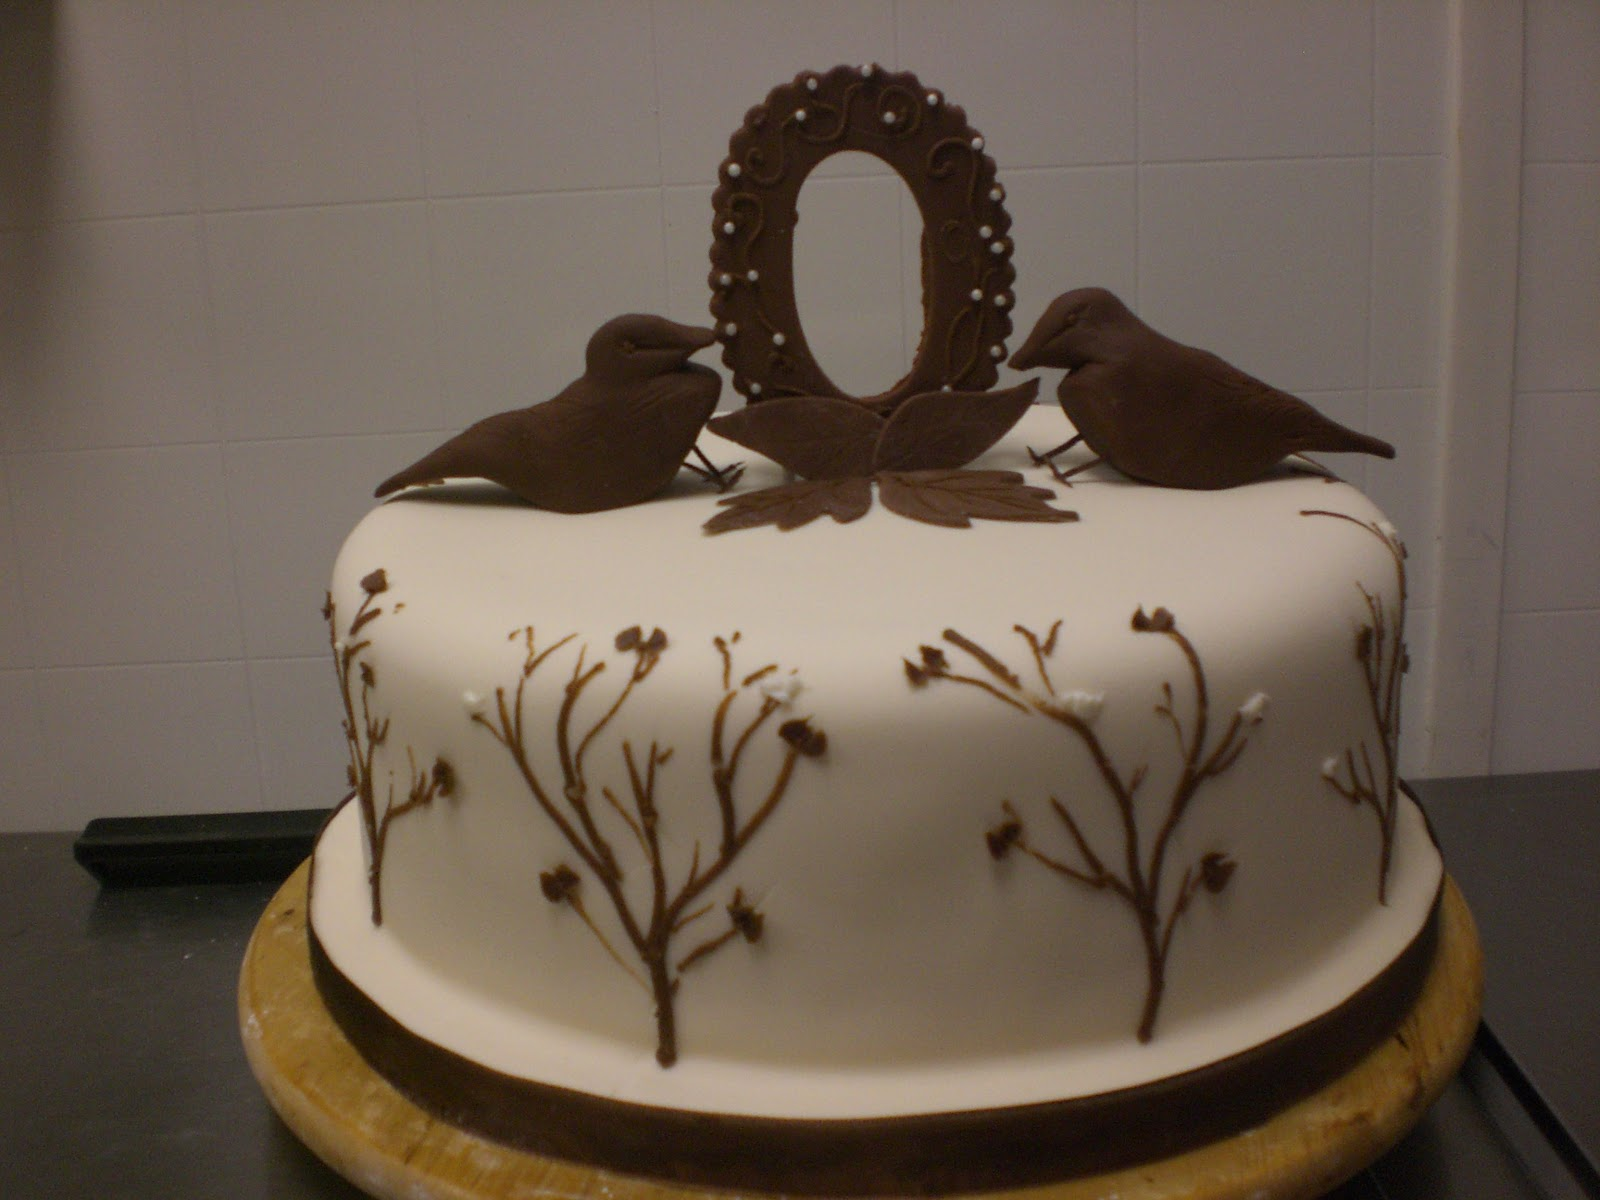 Cake Art Lawrenceville Hwy : CAFE AROMAS: Twigs and Birds Baby Shower Cake